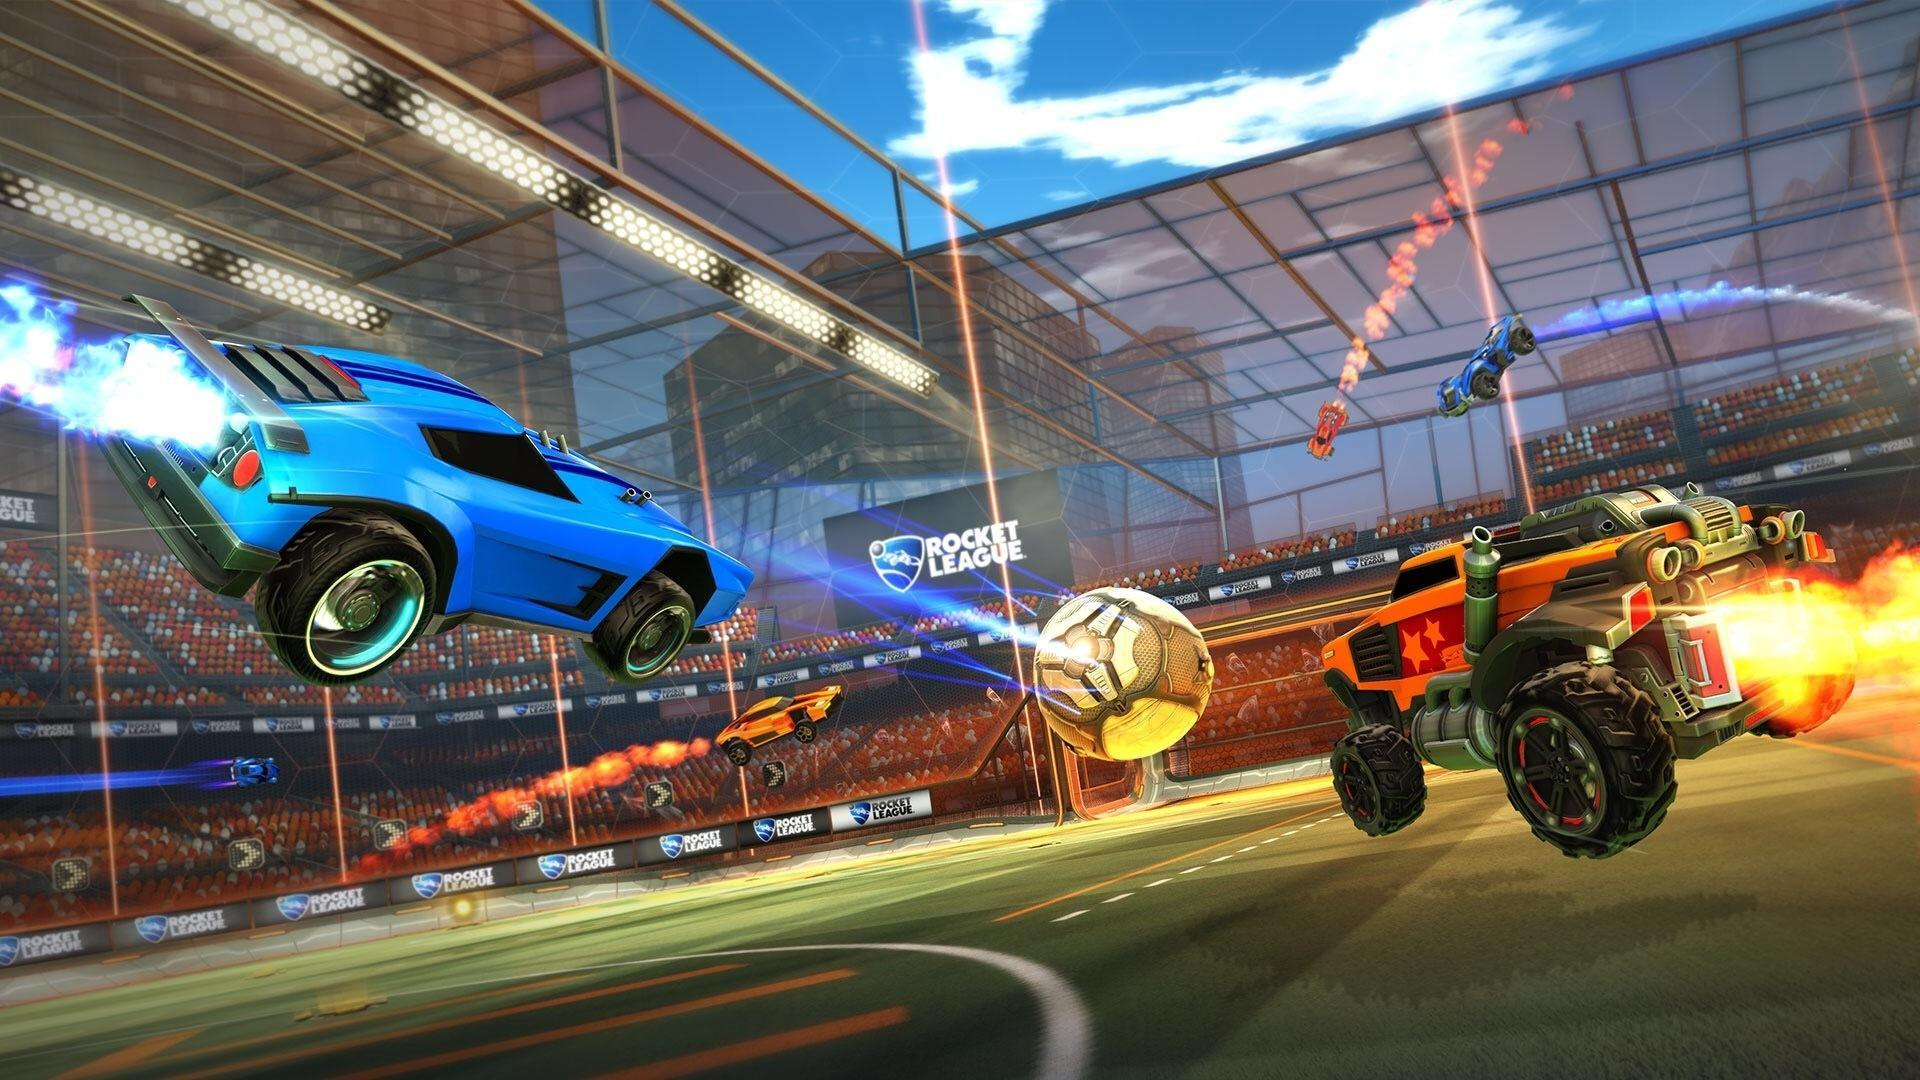 Cross Platform Play Is Coming To The Switch In A Big Way Thanks To Minecraft And Rocket League Both Of Which Will Allow Nintendo Players To Take On Their